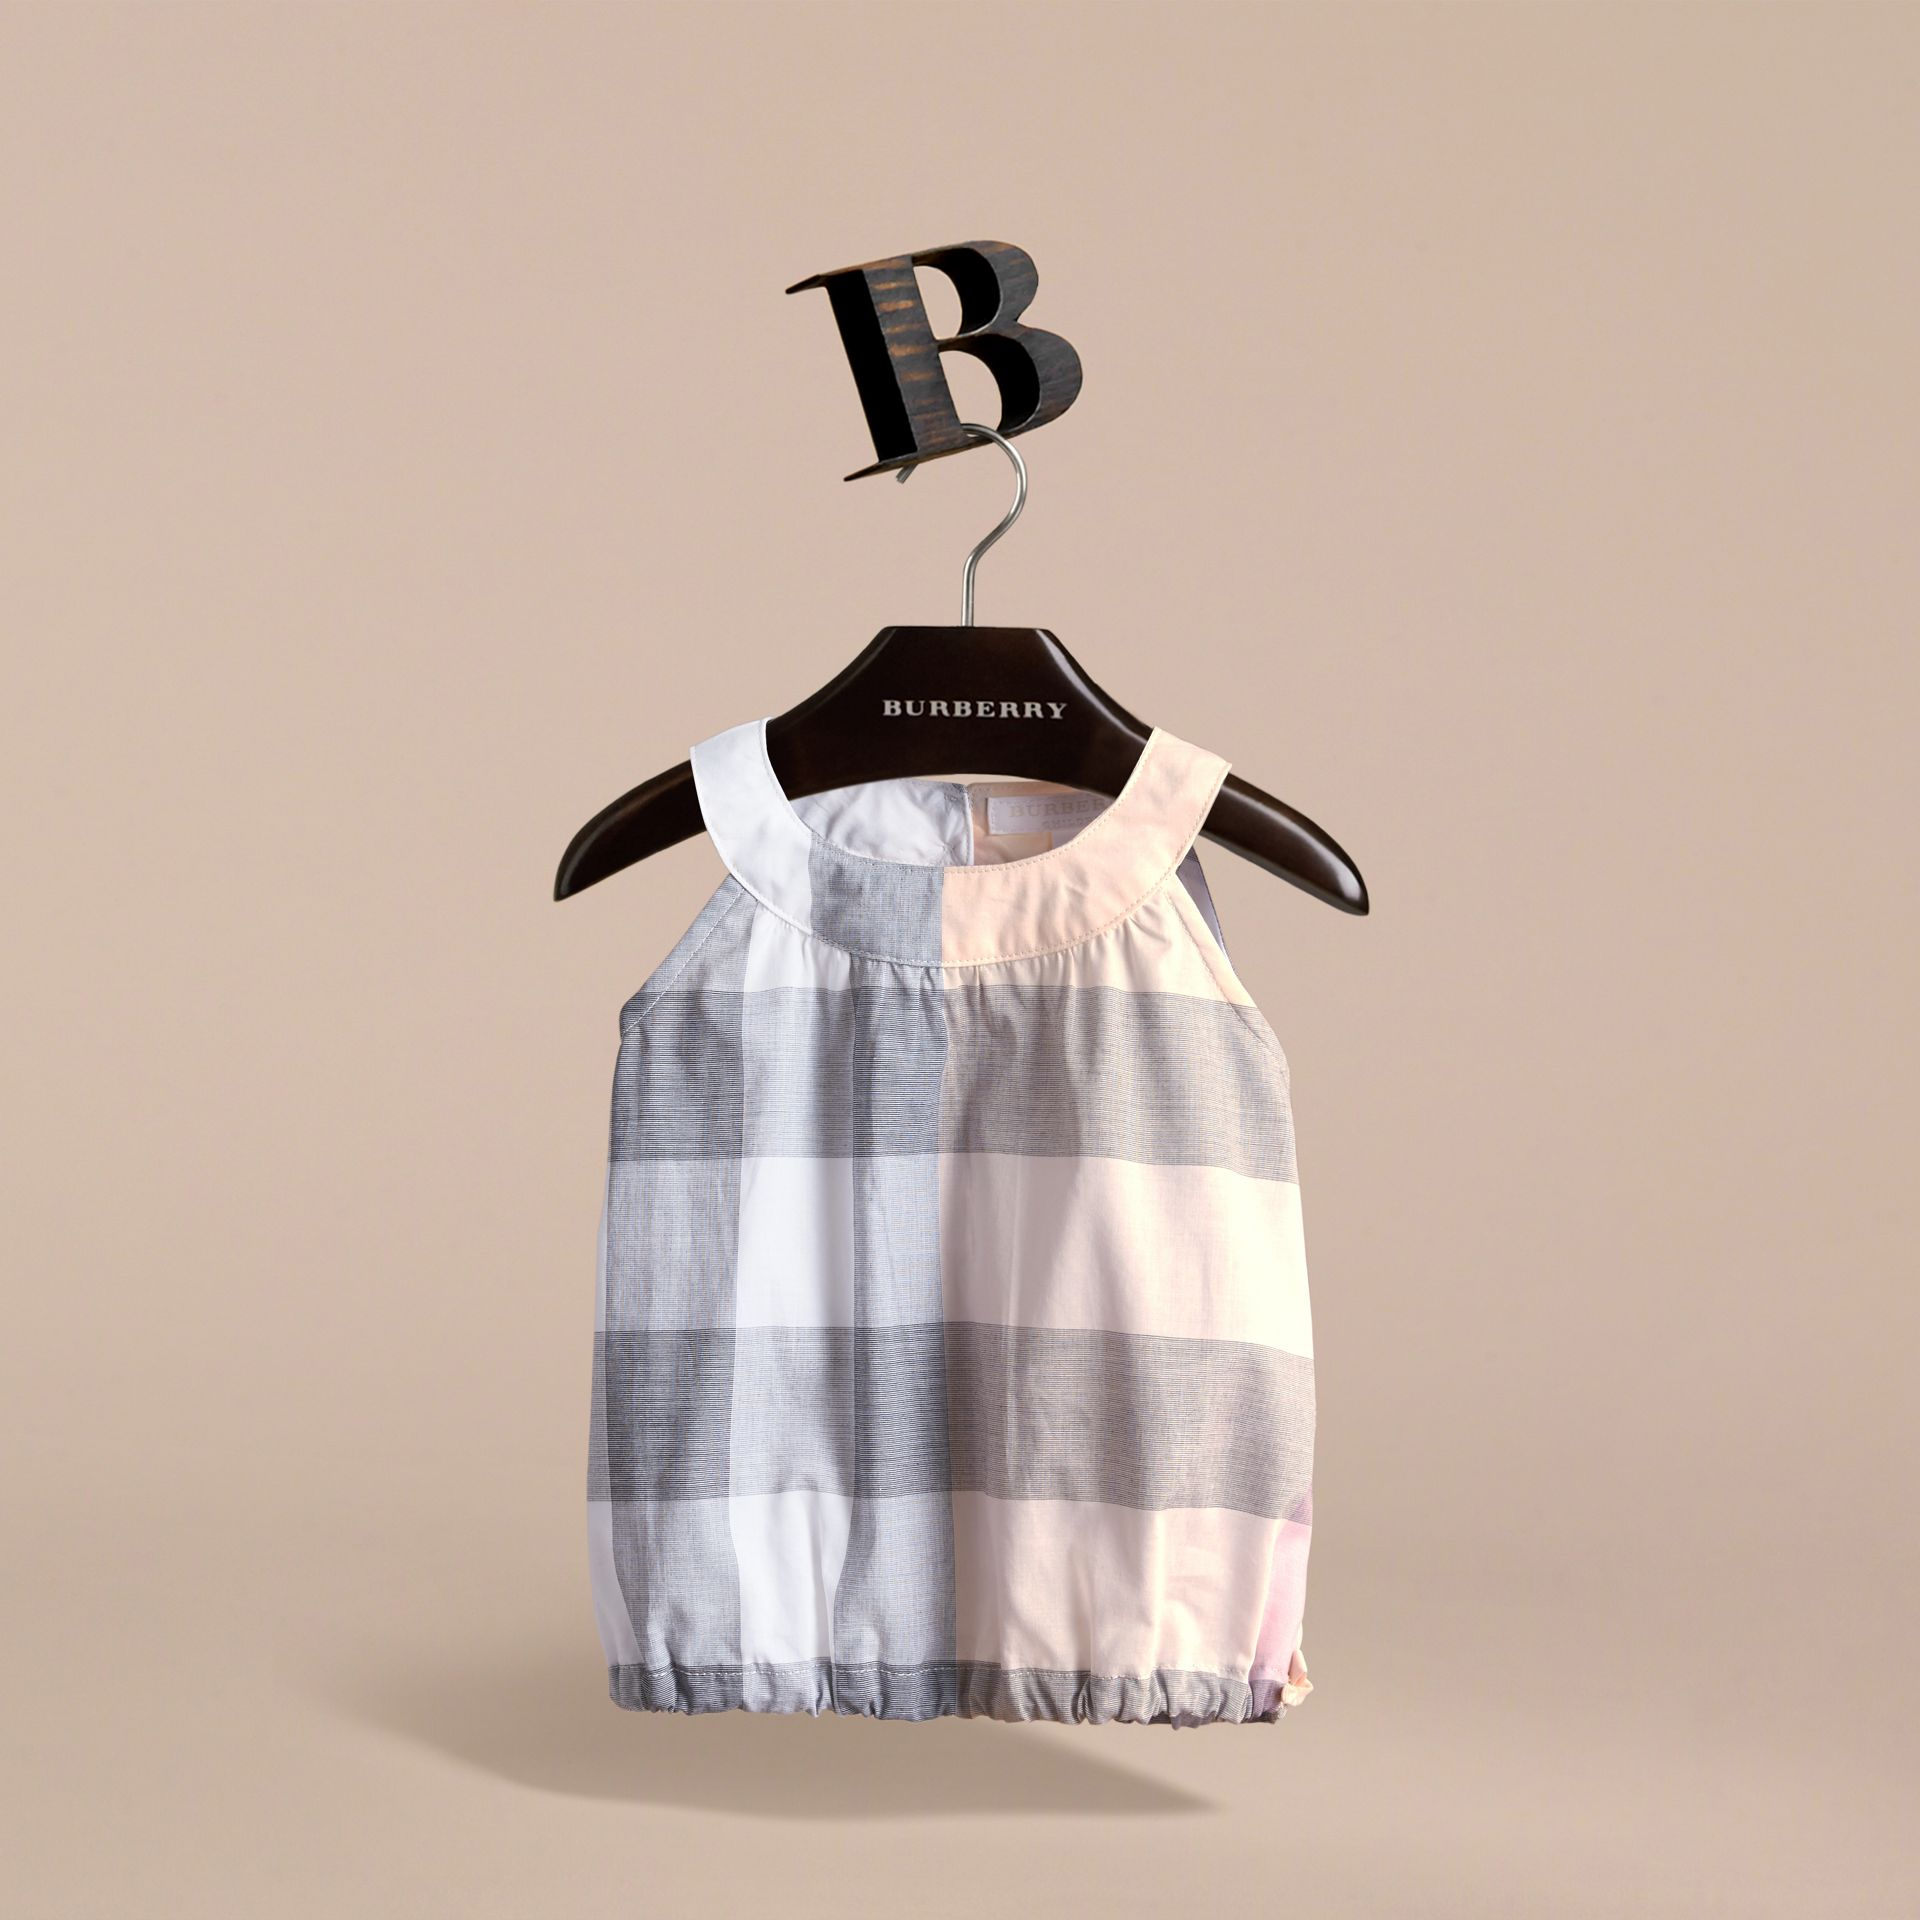 Gathered Check Cotton Top in Apricot | Burberry - gallery image 3